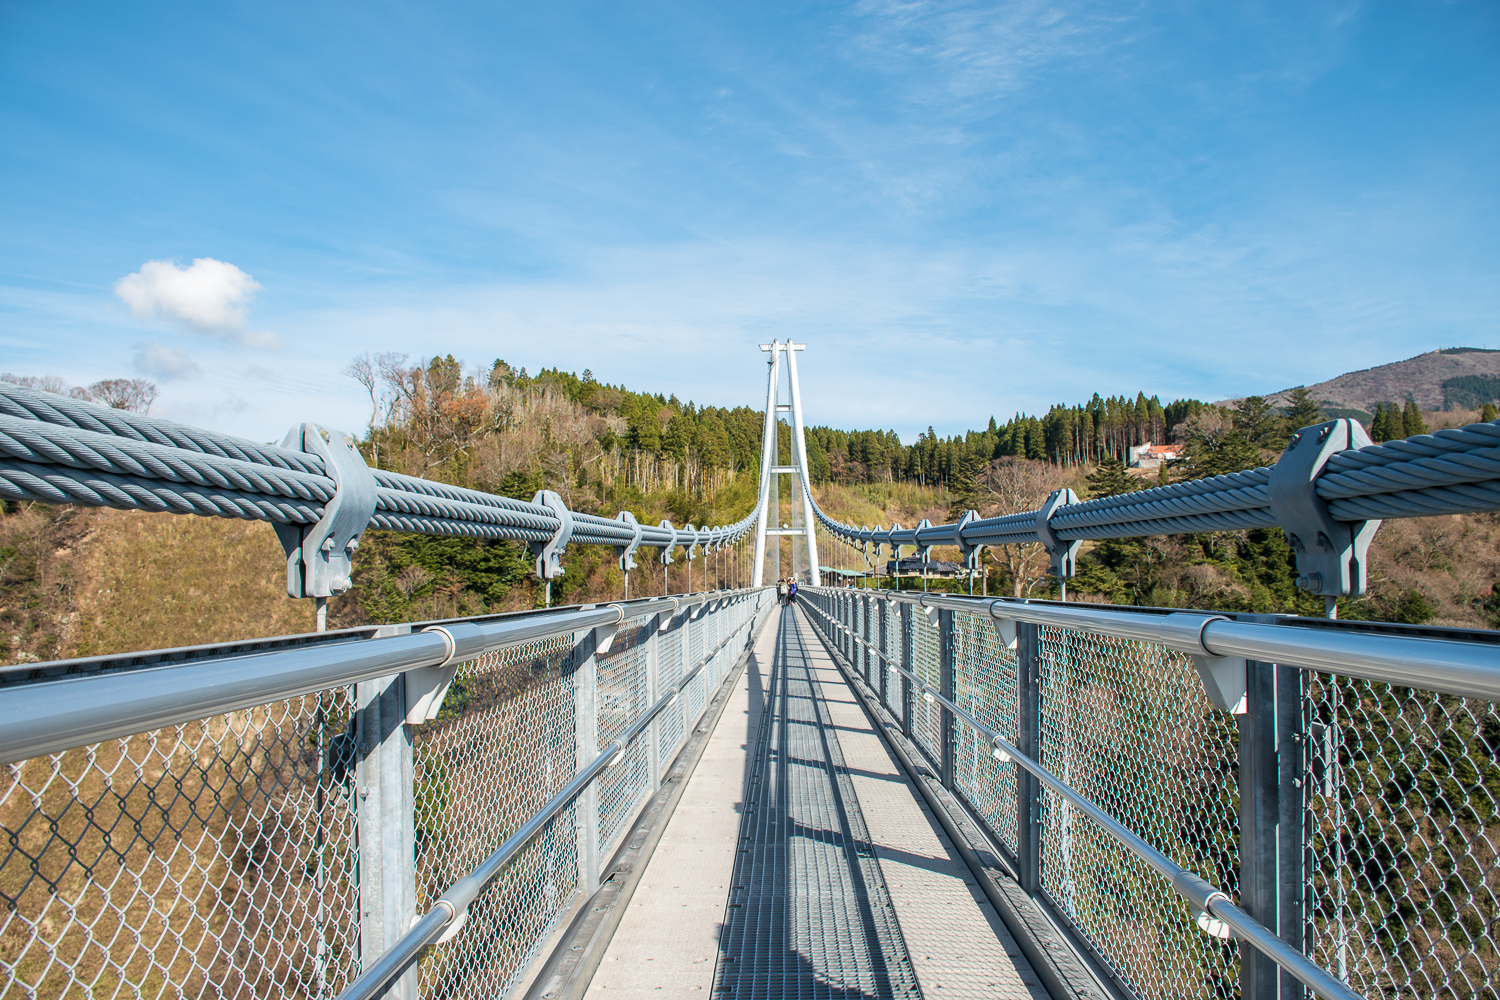 Suspension bridge architecture and engineering details in japan